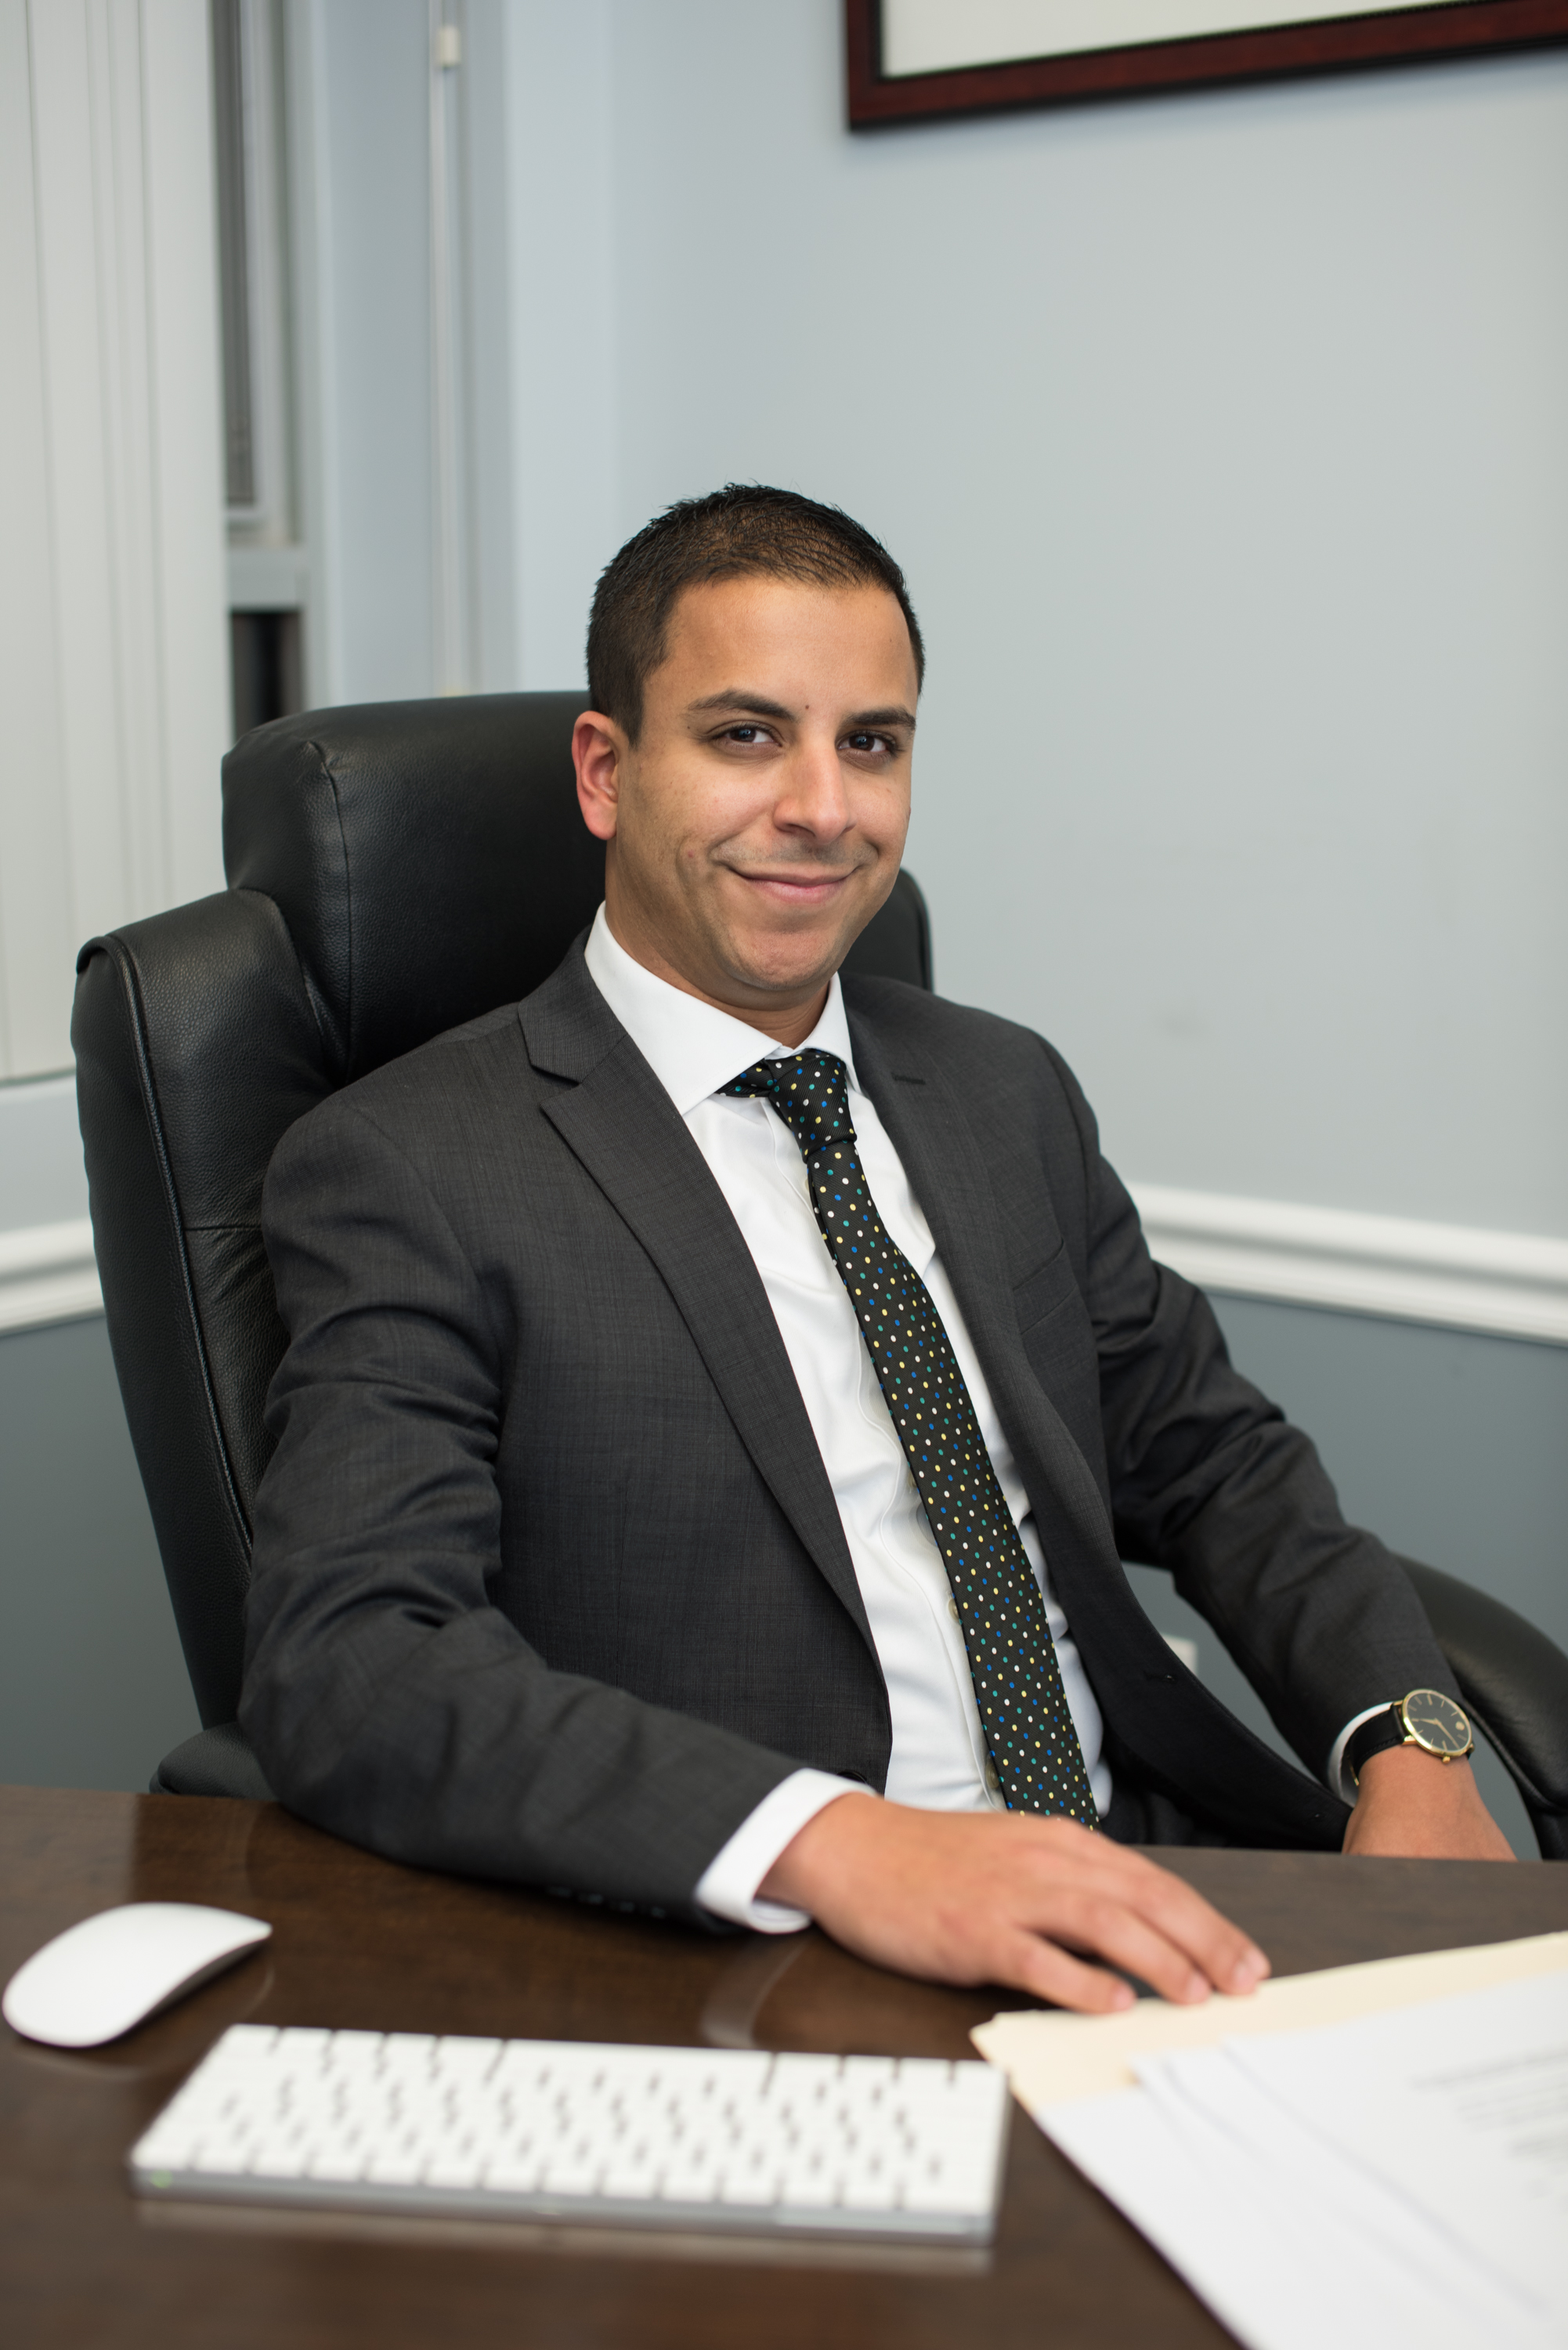 As a law student, Mr. Elias was always eager to get in the courtroom. Capitalizing on a court rule that allows students to make appearances under attorney supervision, Mr. Elias spent his time out of the classroom representing juveniles in delinquency proceedings as a member of the Rutgers Law Children's Justice Clinic and defendants in all stages of criminal proceedings as an intern for the New Jersey Office of the Public Defender. After graduating in the top 15% of his class, Mr. Elias served as a law clerk to the Honorable Robert J. Mega in Union County, where he had a ringside seat to some of the most accomplished criminal attorneys on trial.  Mr. Elias then went on to serve the Burlington County Prosecutor's Office as an Assistant Prosecutor in the Grand Jury/Case Screening Unit, where he was tasked with evaluating, investigating and ultimately presenting hundreds of cases to the Grand Jury for indictment, ranging from simple charges of Shoplifting and Drug Possession to more complex, multi-defendant and multi-count indictments charging serious crimes such as Identity Theft and Armed Robbery. Mr. Elias was later employed by the top auto insurer in New Jersey and assigned to a heavy caseload defending his clients against claims of property damage and catastrophic bodily injury. Mr. Elias quickly gained valuable experience in all aspects of personal injury litigation and has never lost a jury trial to date. With experience working for both the government and the insurance industry, Mr. Elias is well-qualified to confront the most challenging legal issues confronted by his clients.  Mr. Elias is an active member of the Coptic Orthodox community in New Jersey and is also conversational in Arabic.